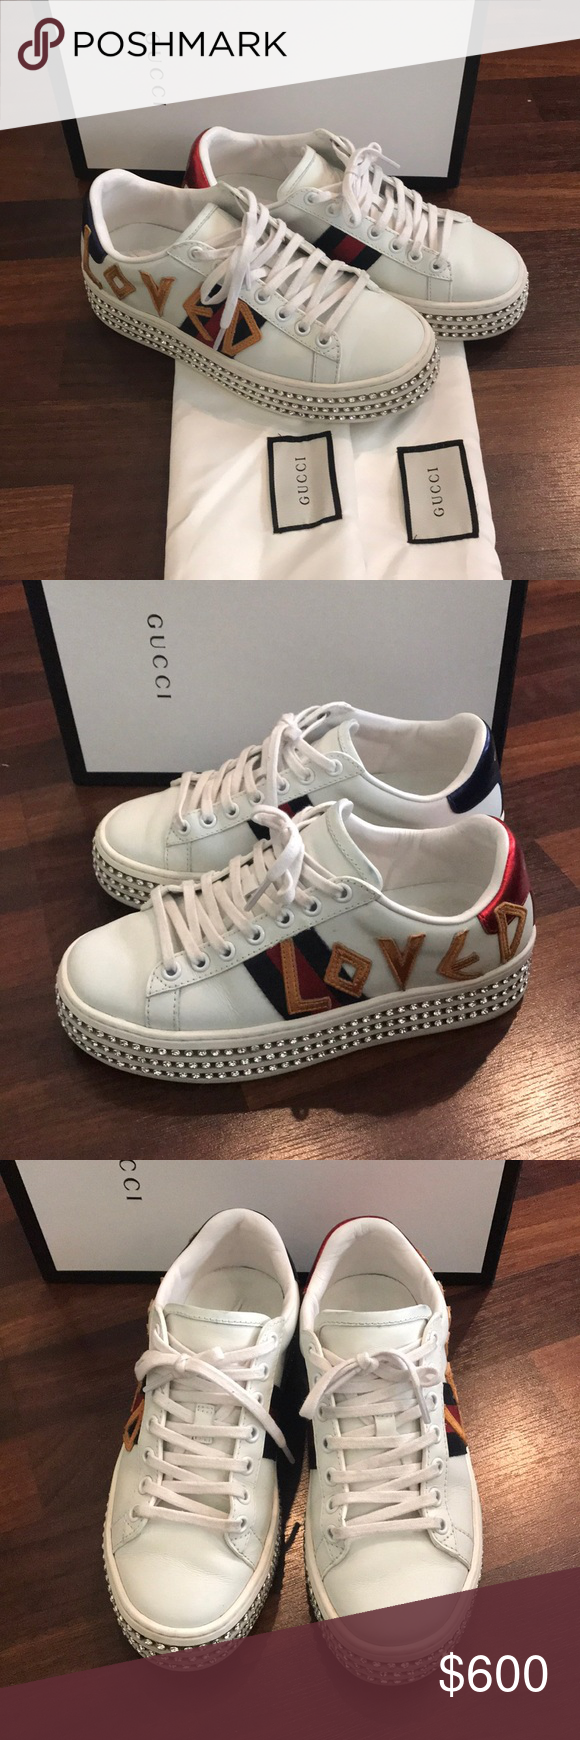 f3146165b Gucci ace sneakers loved with crystals Sz 37/7 Us Gucci ace sneakers set on  Platform rubber sole embellished with rows of crystals Inbox and dustbag  and ...